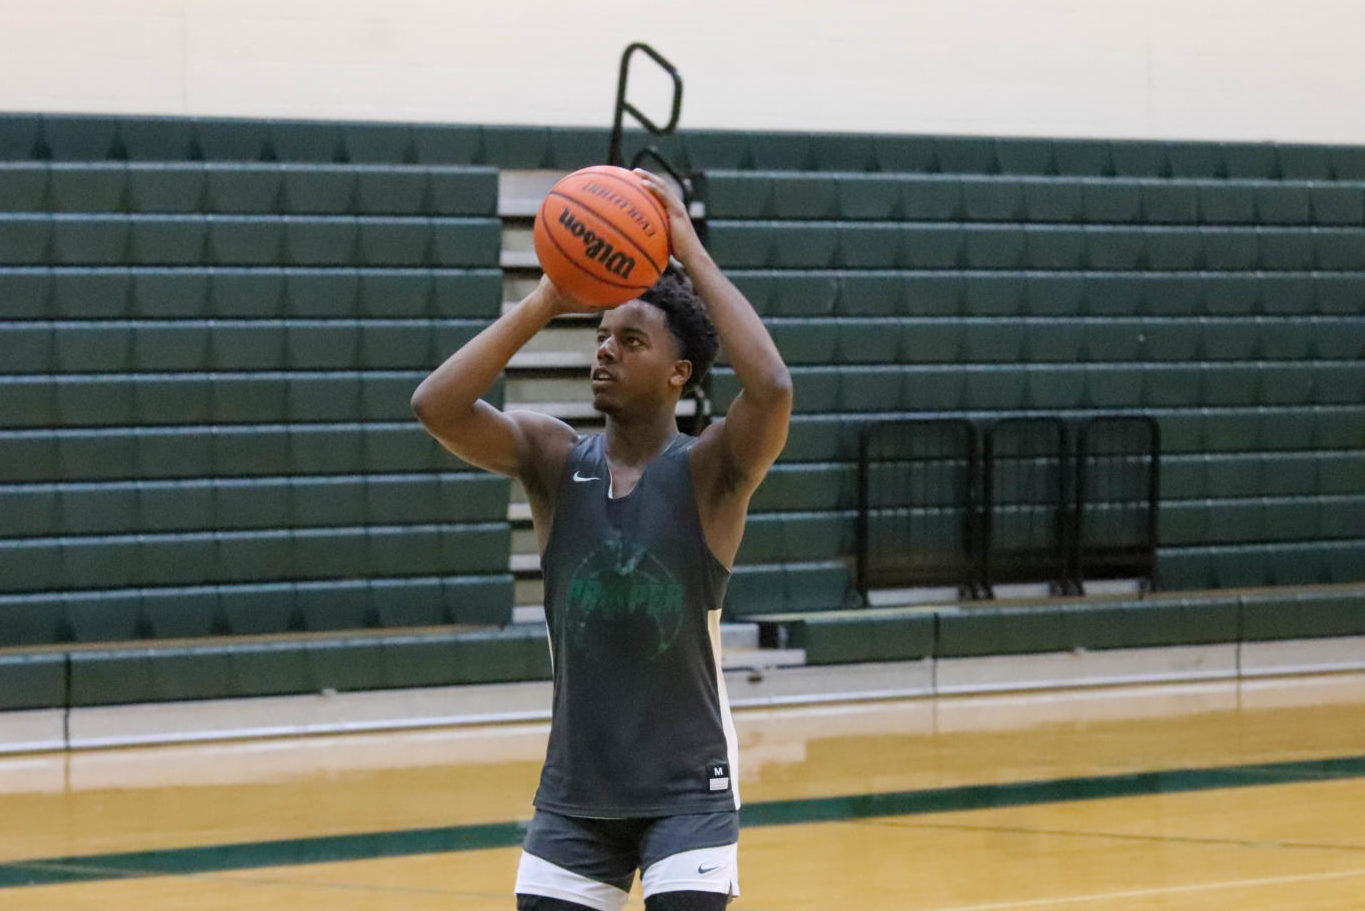 """Junior Grant Shaw shoots the ball during a morning practice. Shaw was an honorable mention all-district player last year. """"We have good potential to go far this year,"""" varsity manager and junior Boston Bogard said. """"We have a lot of talent and our team is prone to do something good."""""""